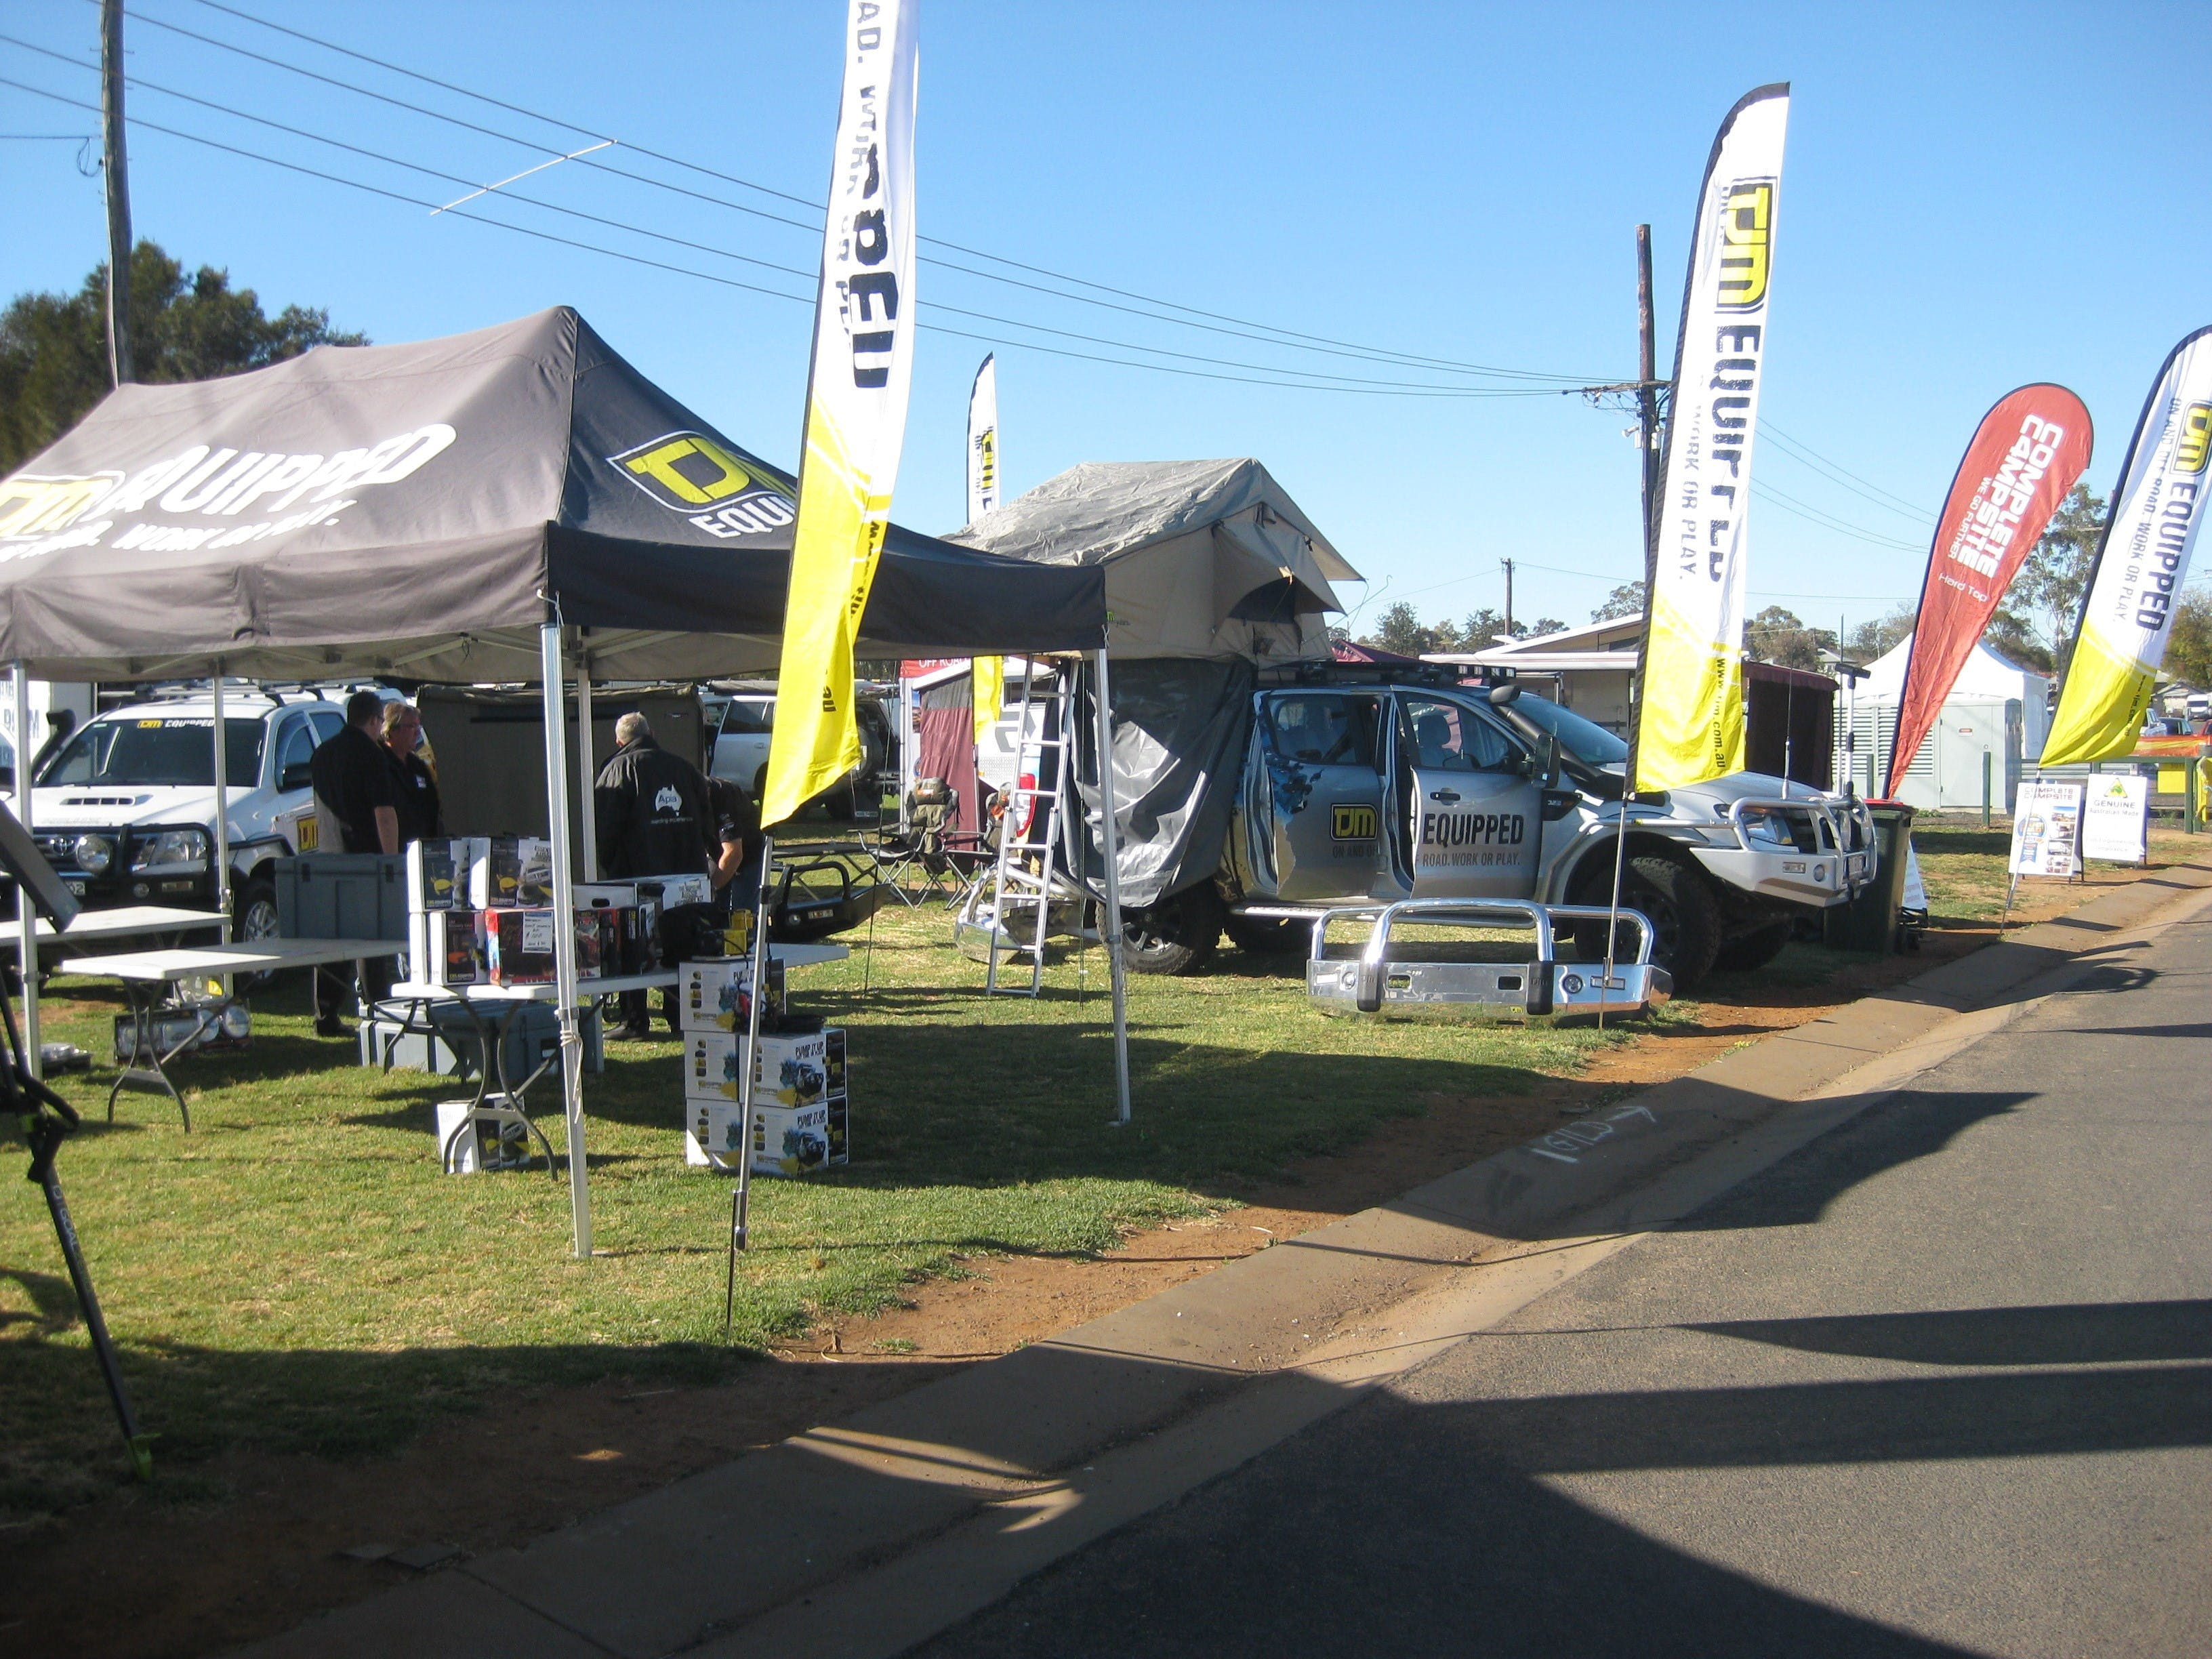 Orana Caravan Camping 4WD Fish and Boat Show - Accommodation Melbourne